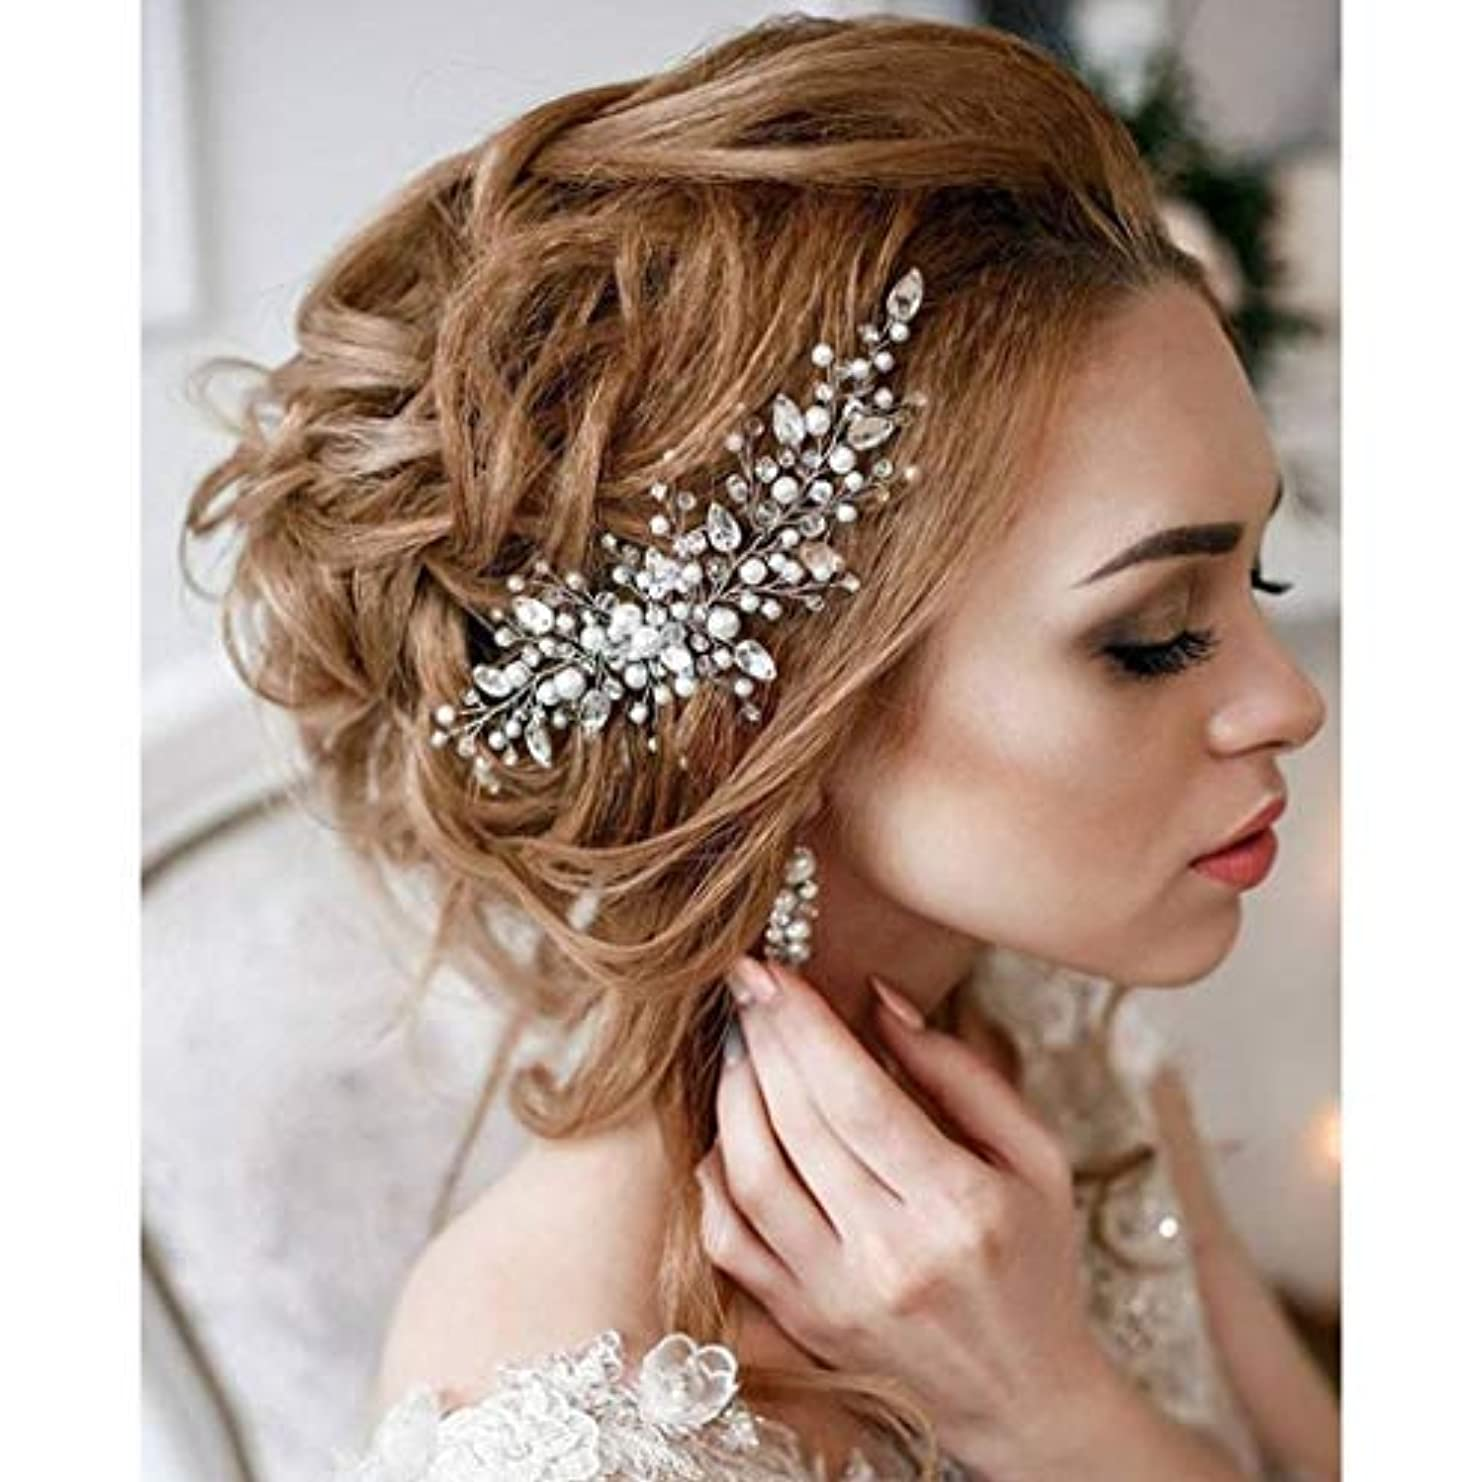 読書主導権平行Aukmla Bride Wedding Hair Combs Bridal Hair Accessories Decorative for Brides and Bridesmaids [並行輸入品]